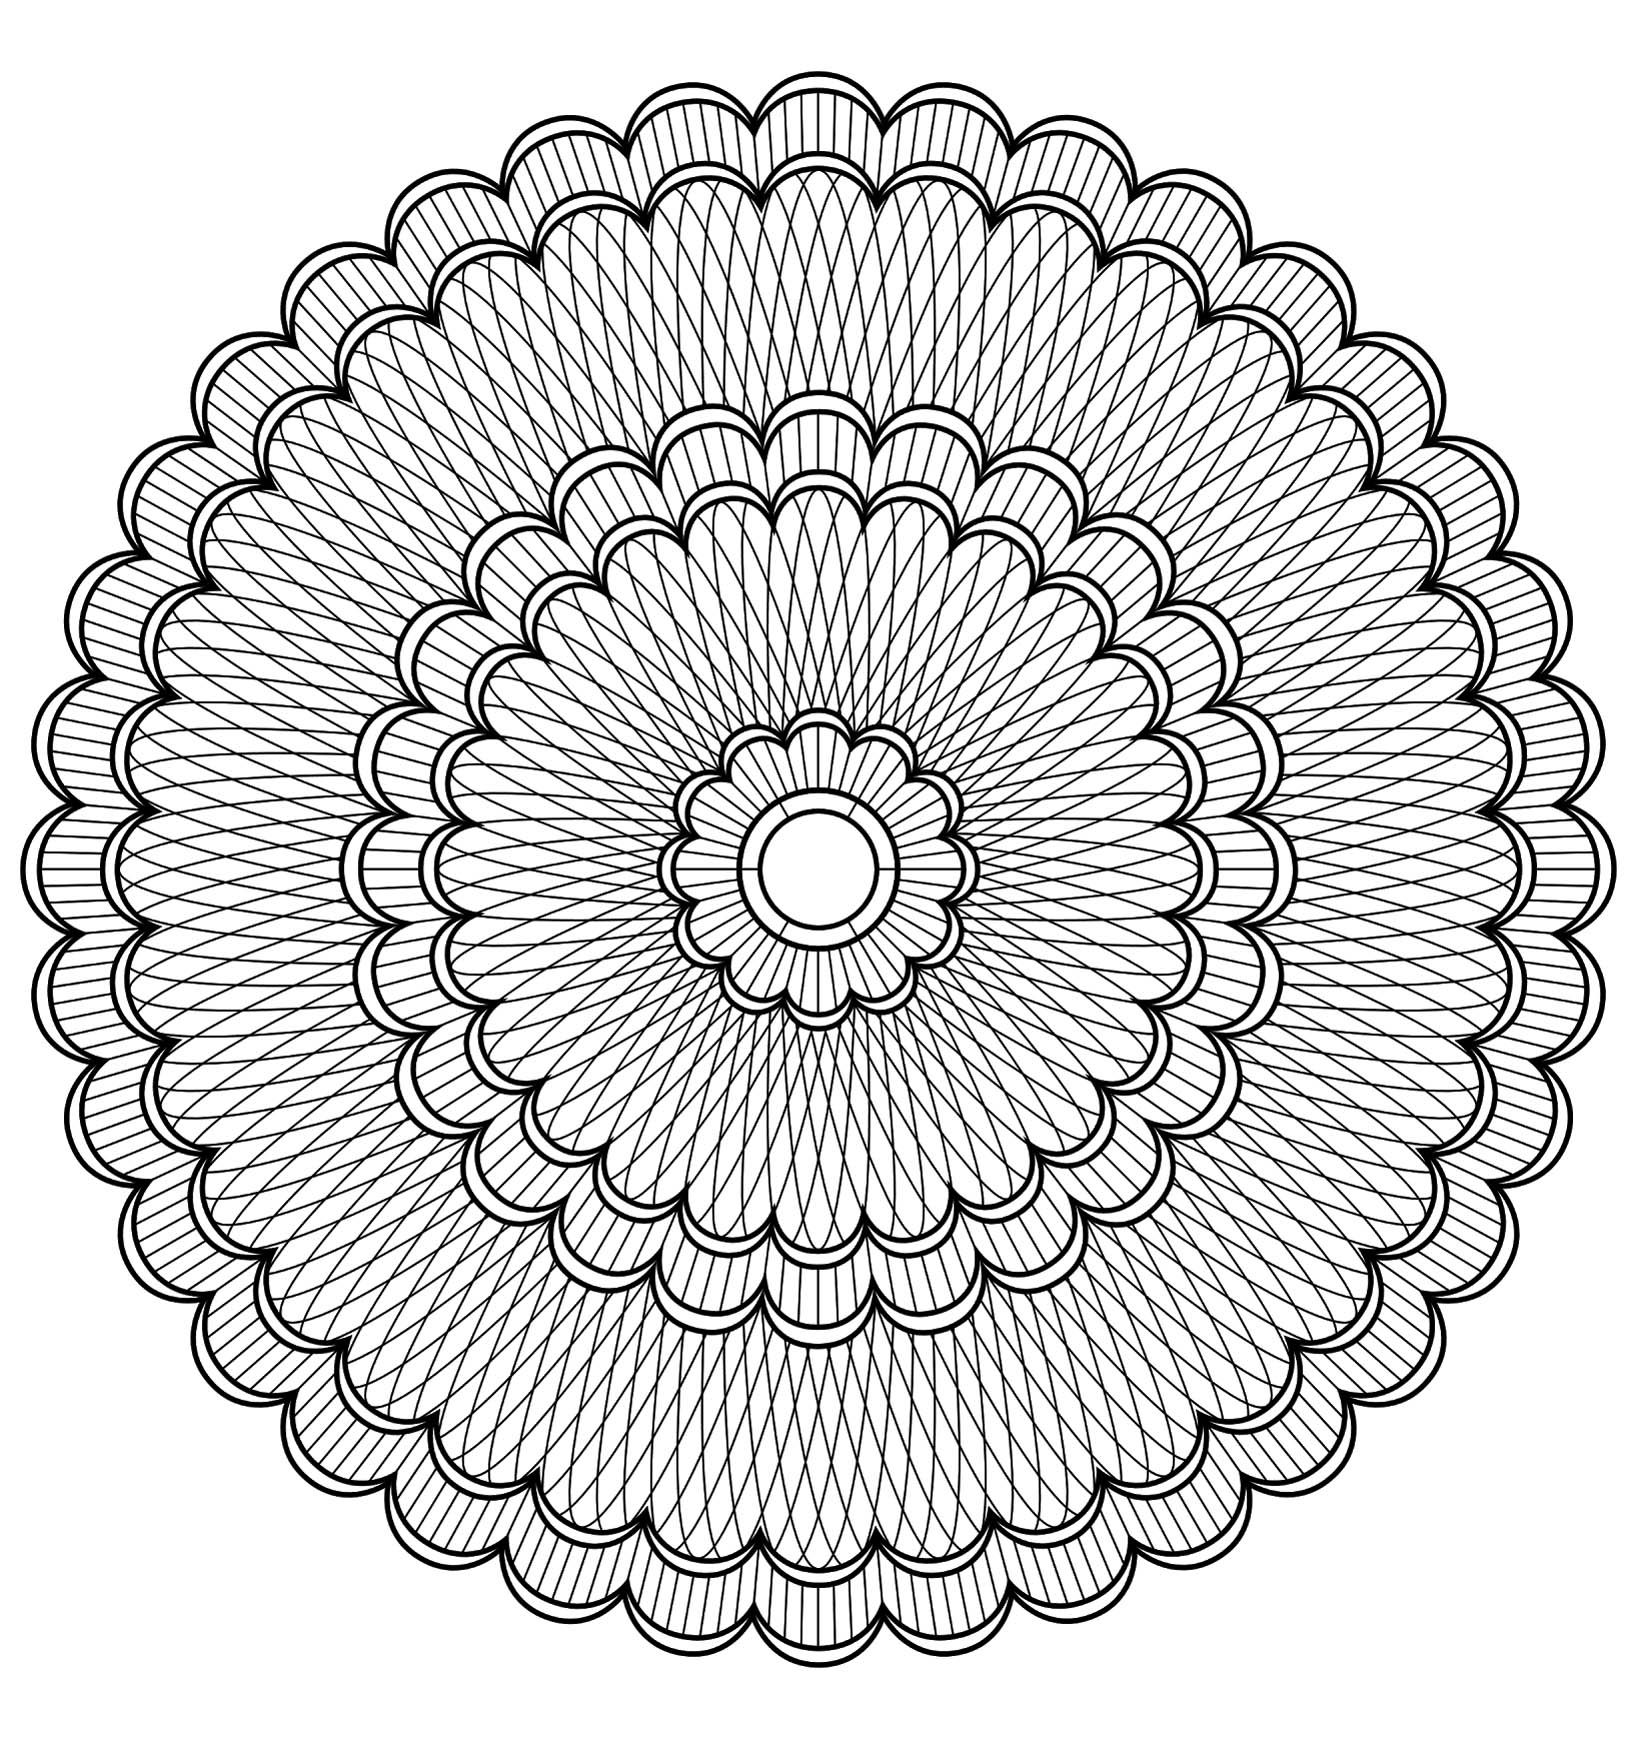 Mandala To Color Patterns Geometric 4 From The Gallery